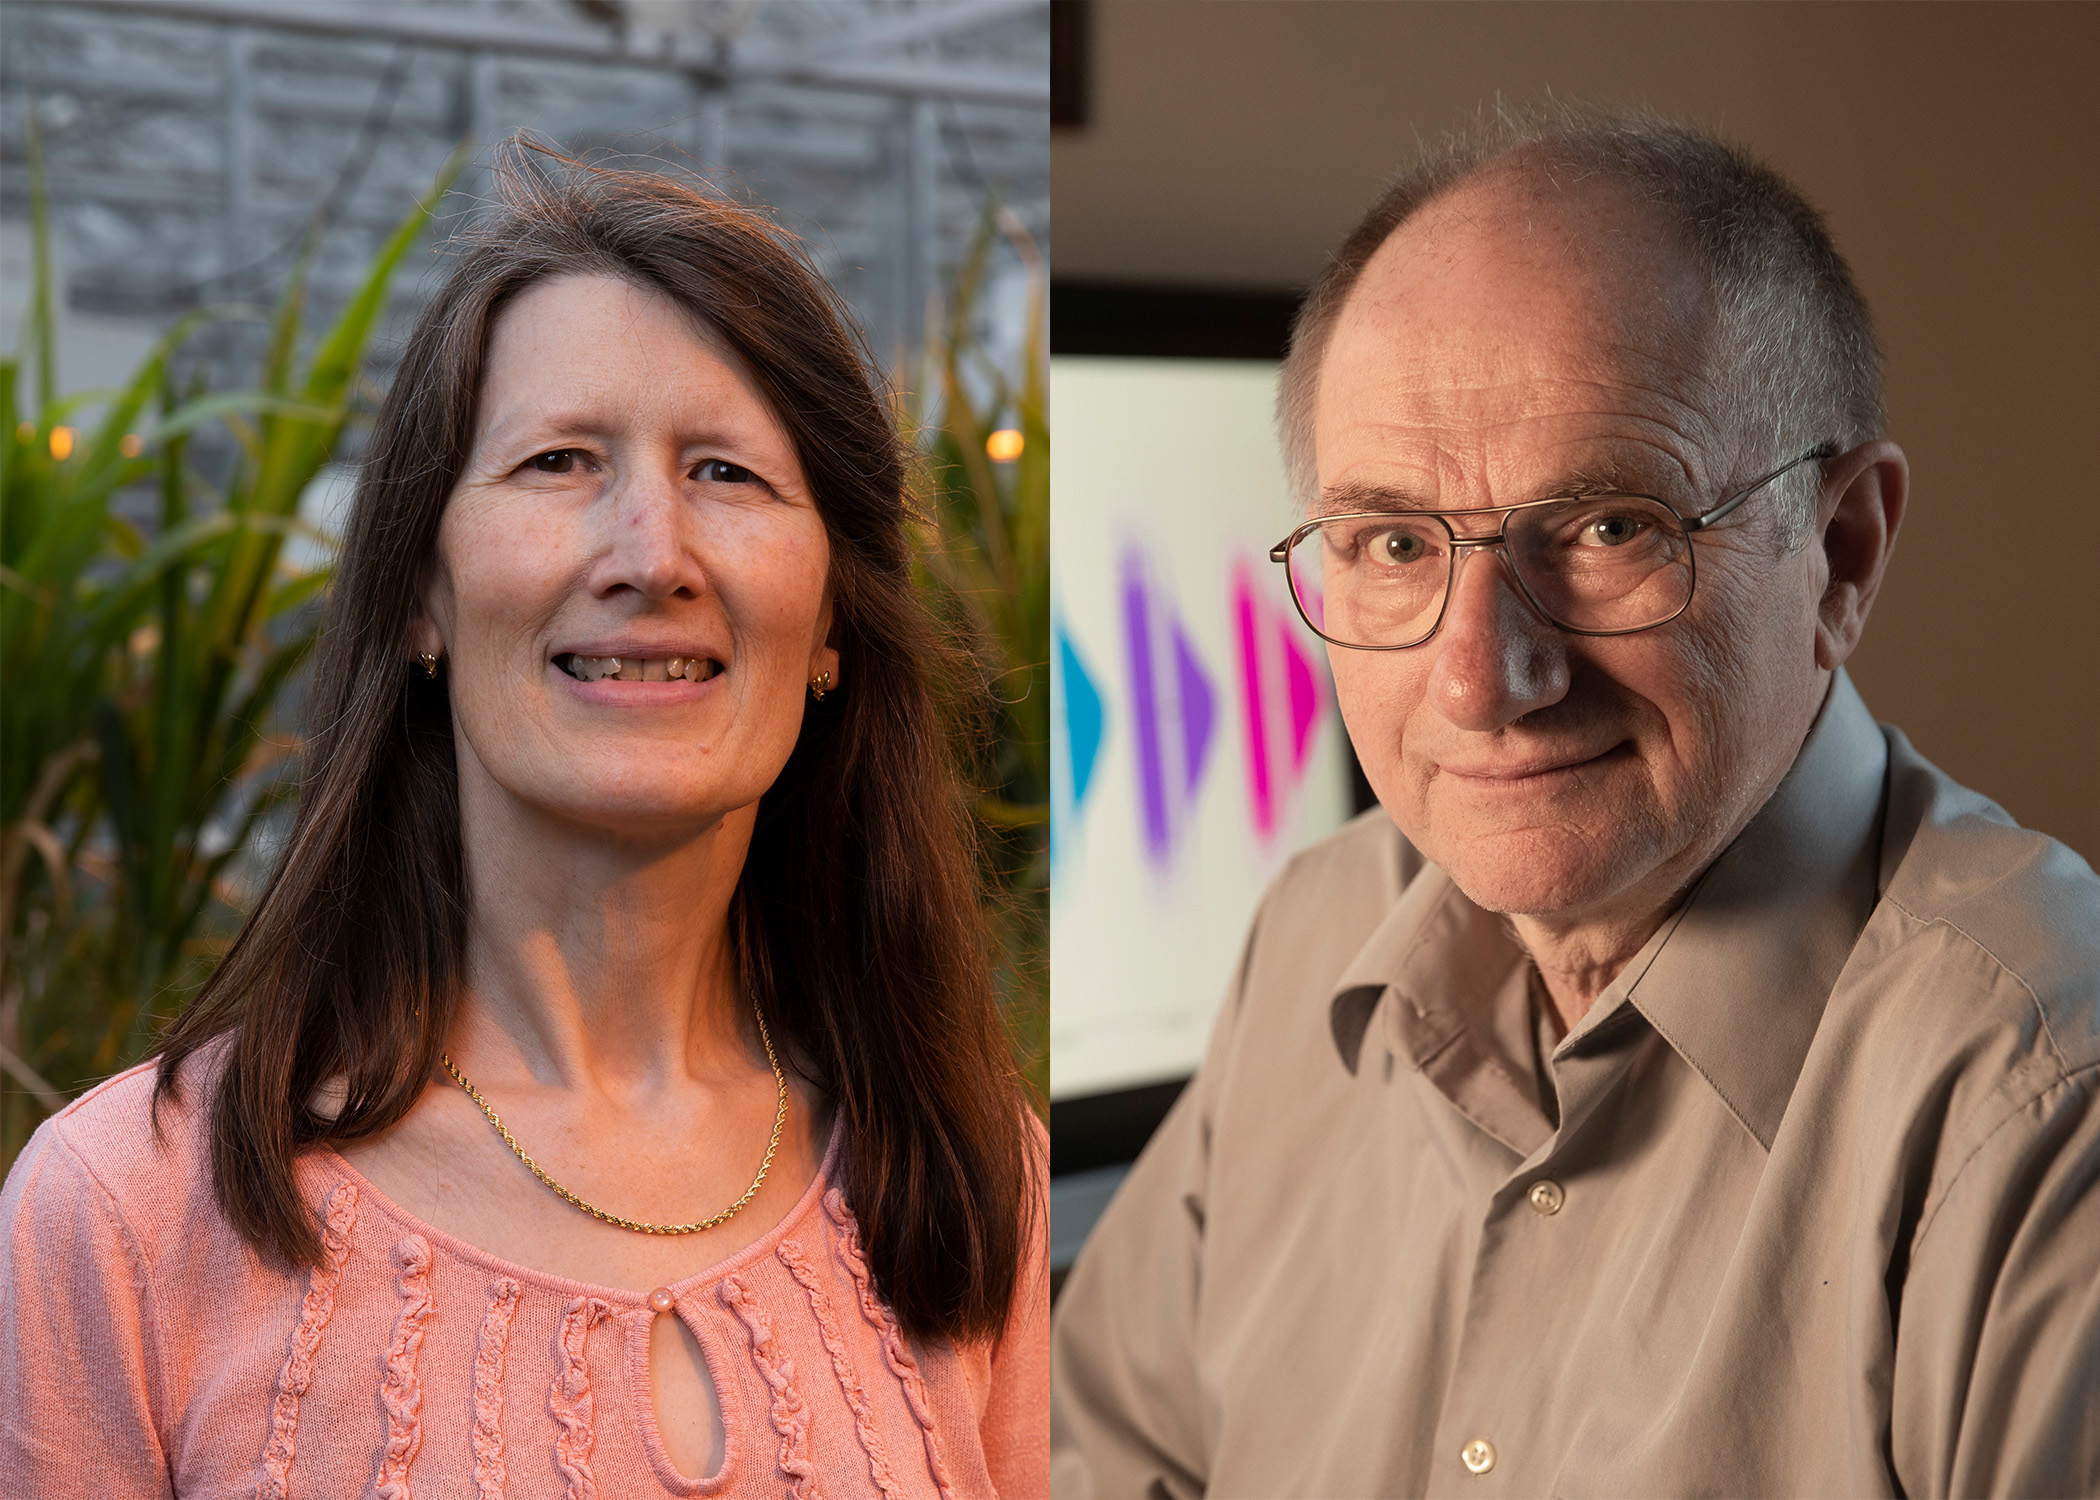 The title of Distinguished Research Professor is awarded to faculty who are internationally recognized for their original contributions to knowledge and whose work promises to foster continued creativity in their discipline. Katrien Devos and Ignacy Misztal are two of the 2020 recipients.